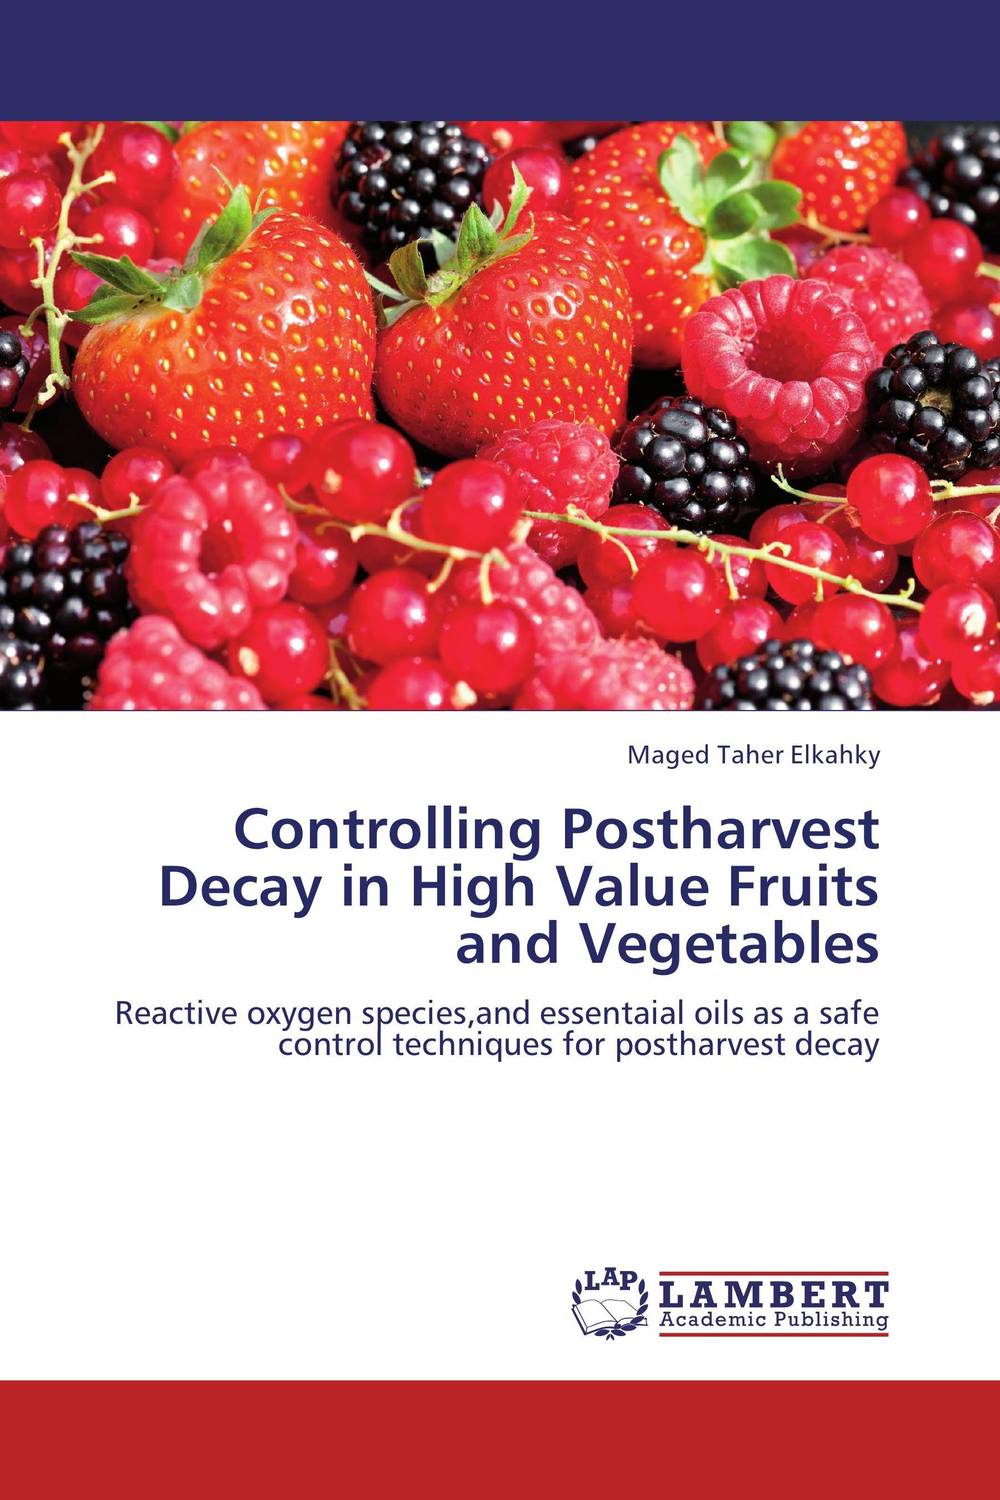 Controlling Postharvest Decay in High Value Fruits and Vegetables